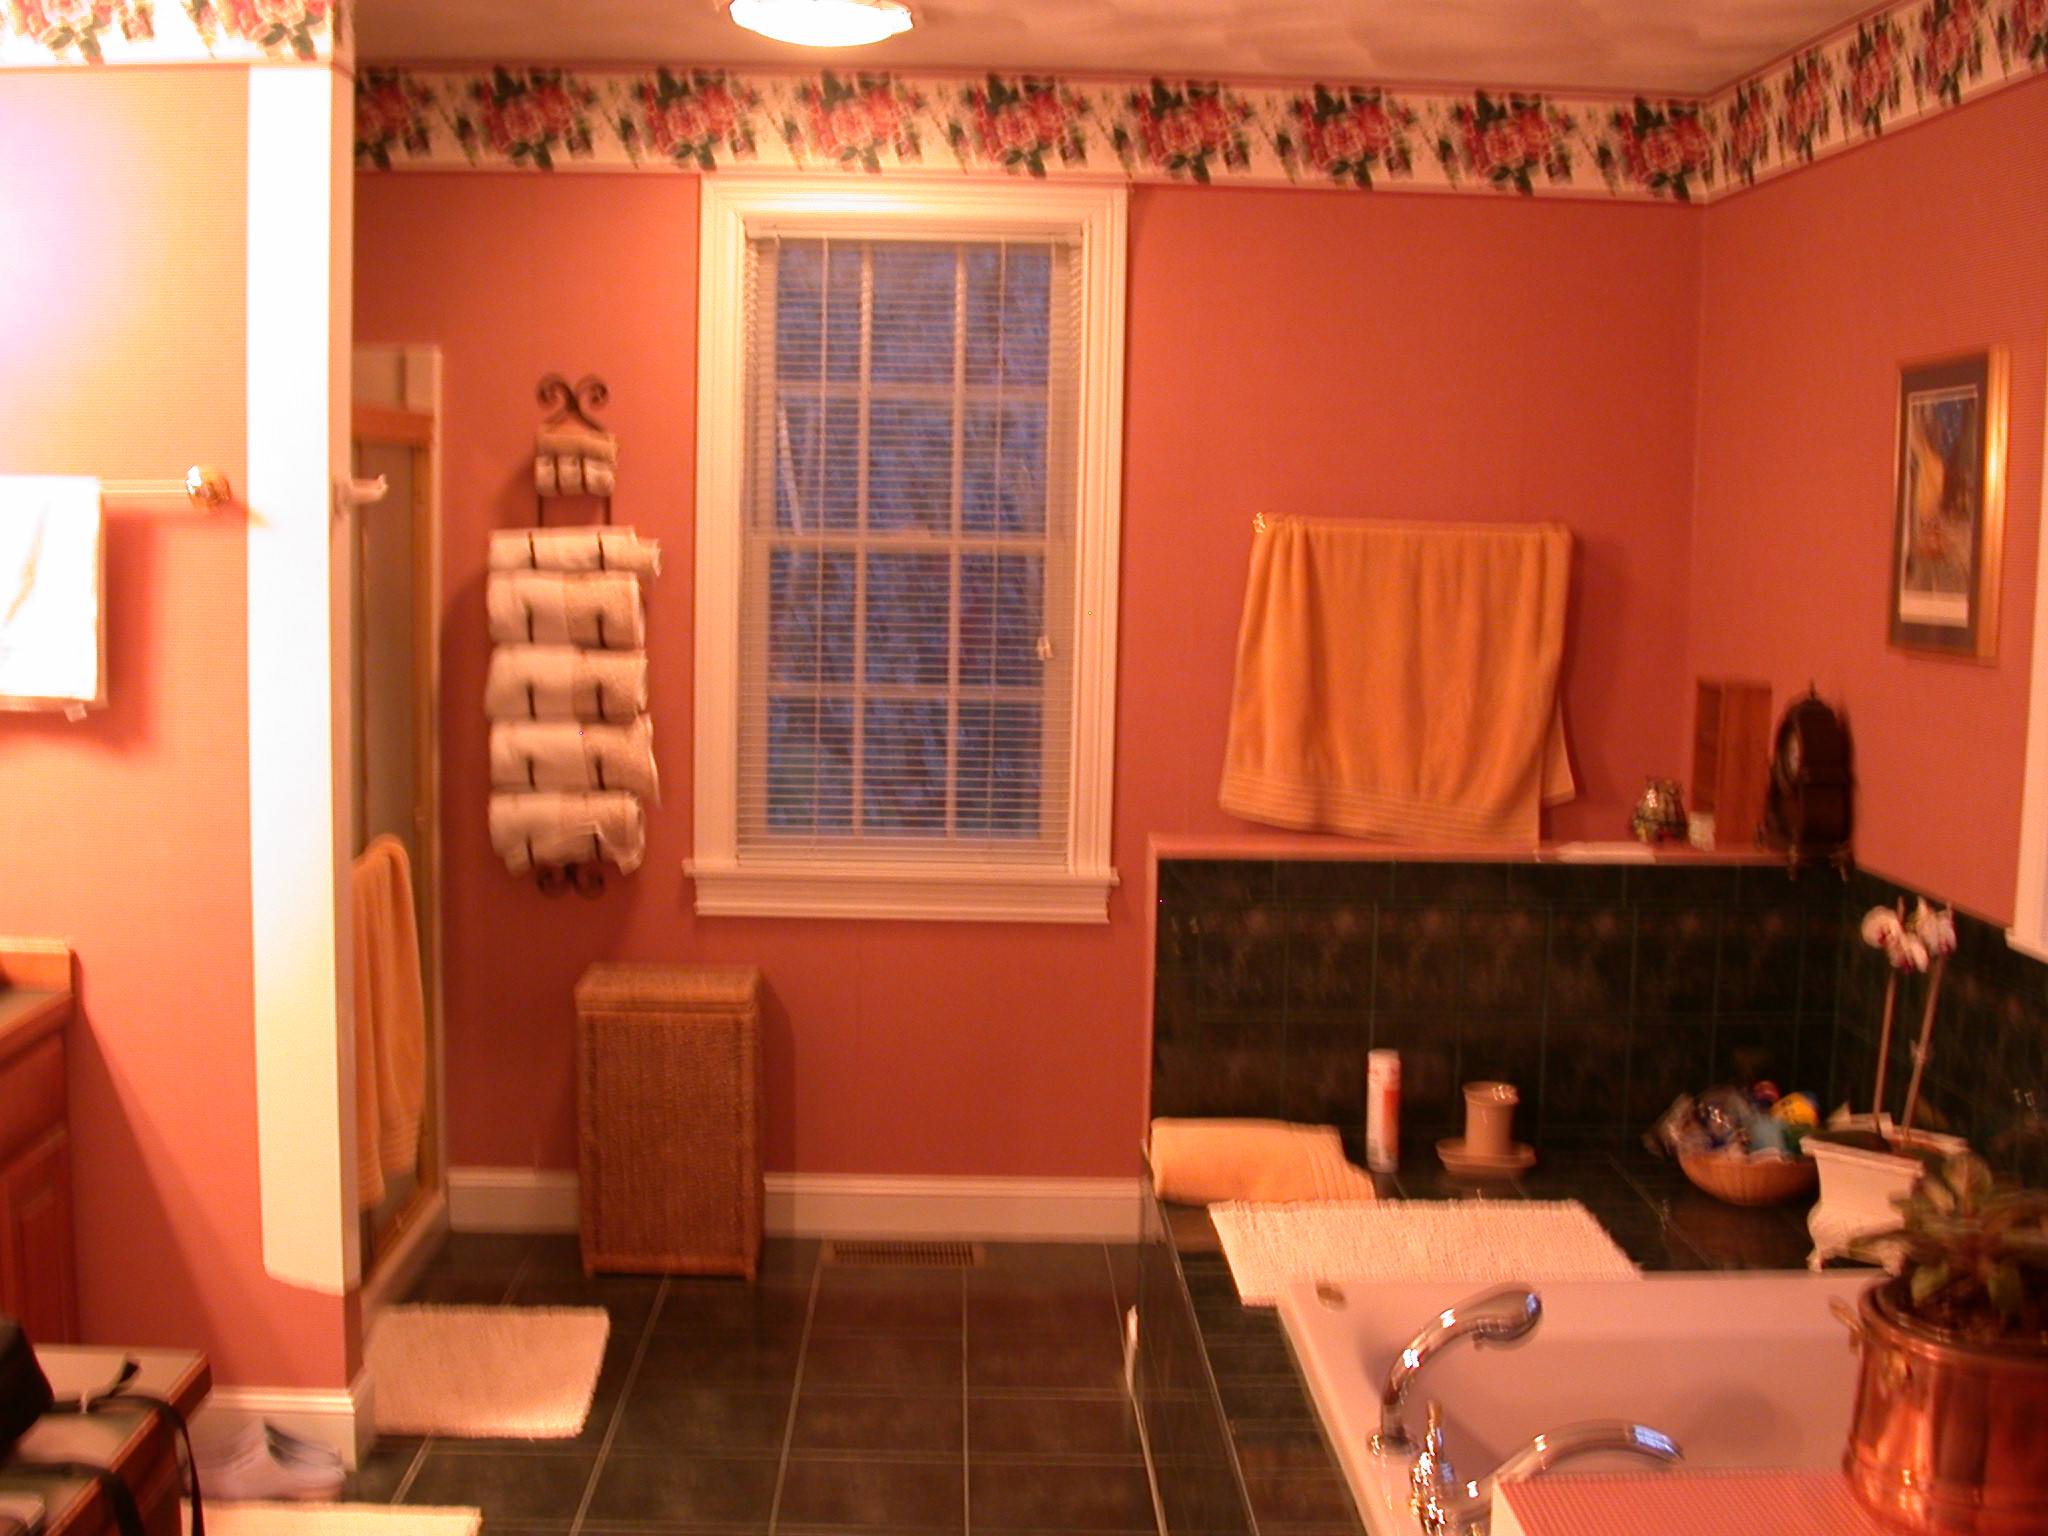 BEFORE: DATED GREEN & PINK BATHROOM